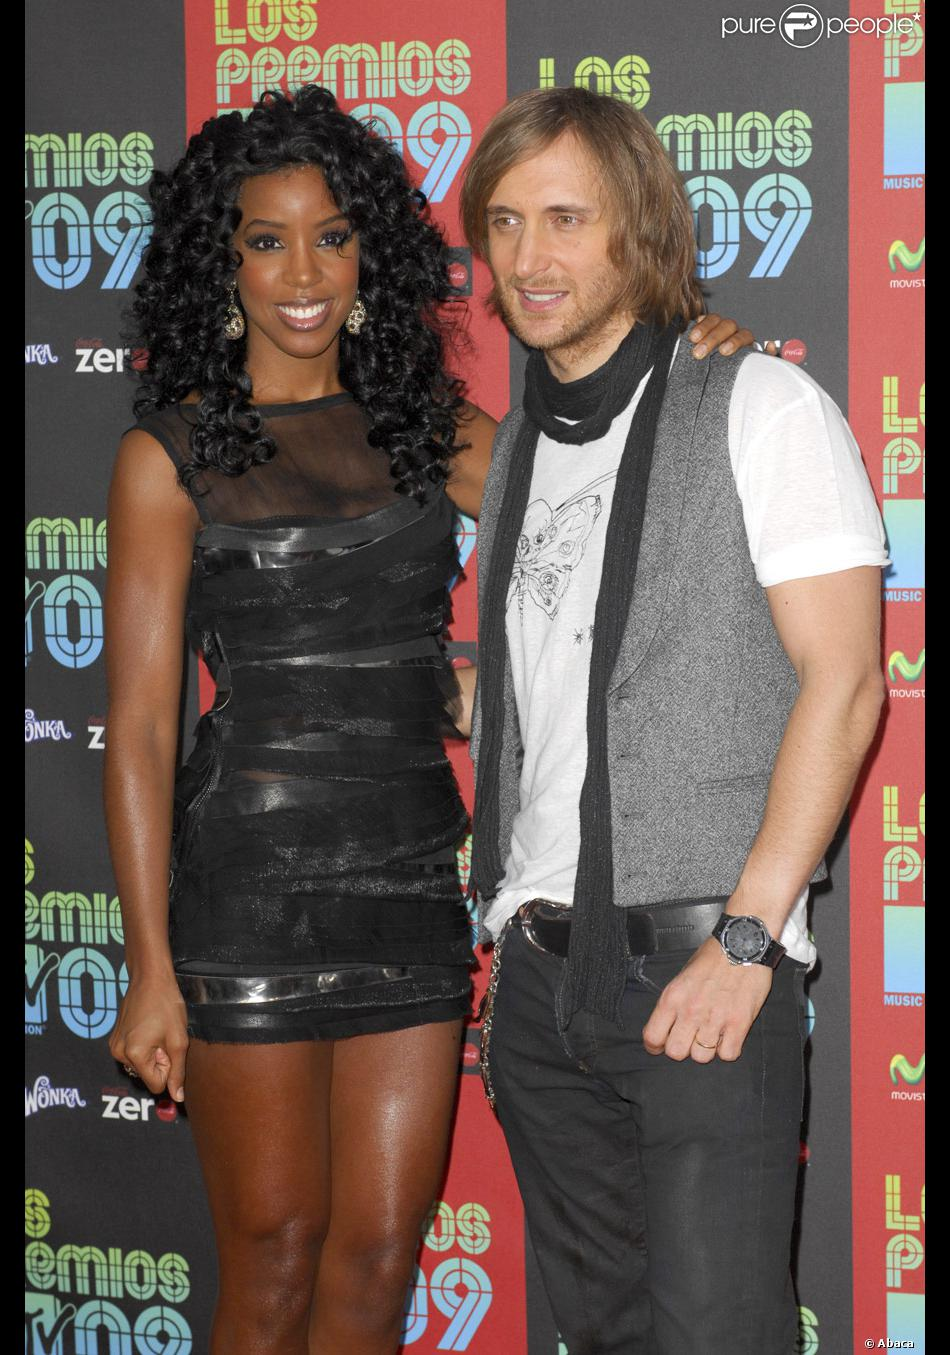 ¿Cuánto mide David Guetta? - Real height 300252-david-guetta-et-kelly-rowland-a-950x0-3